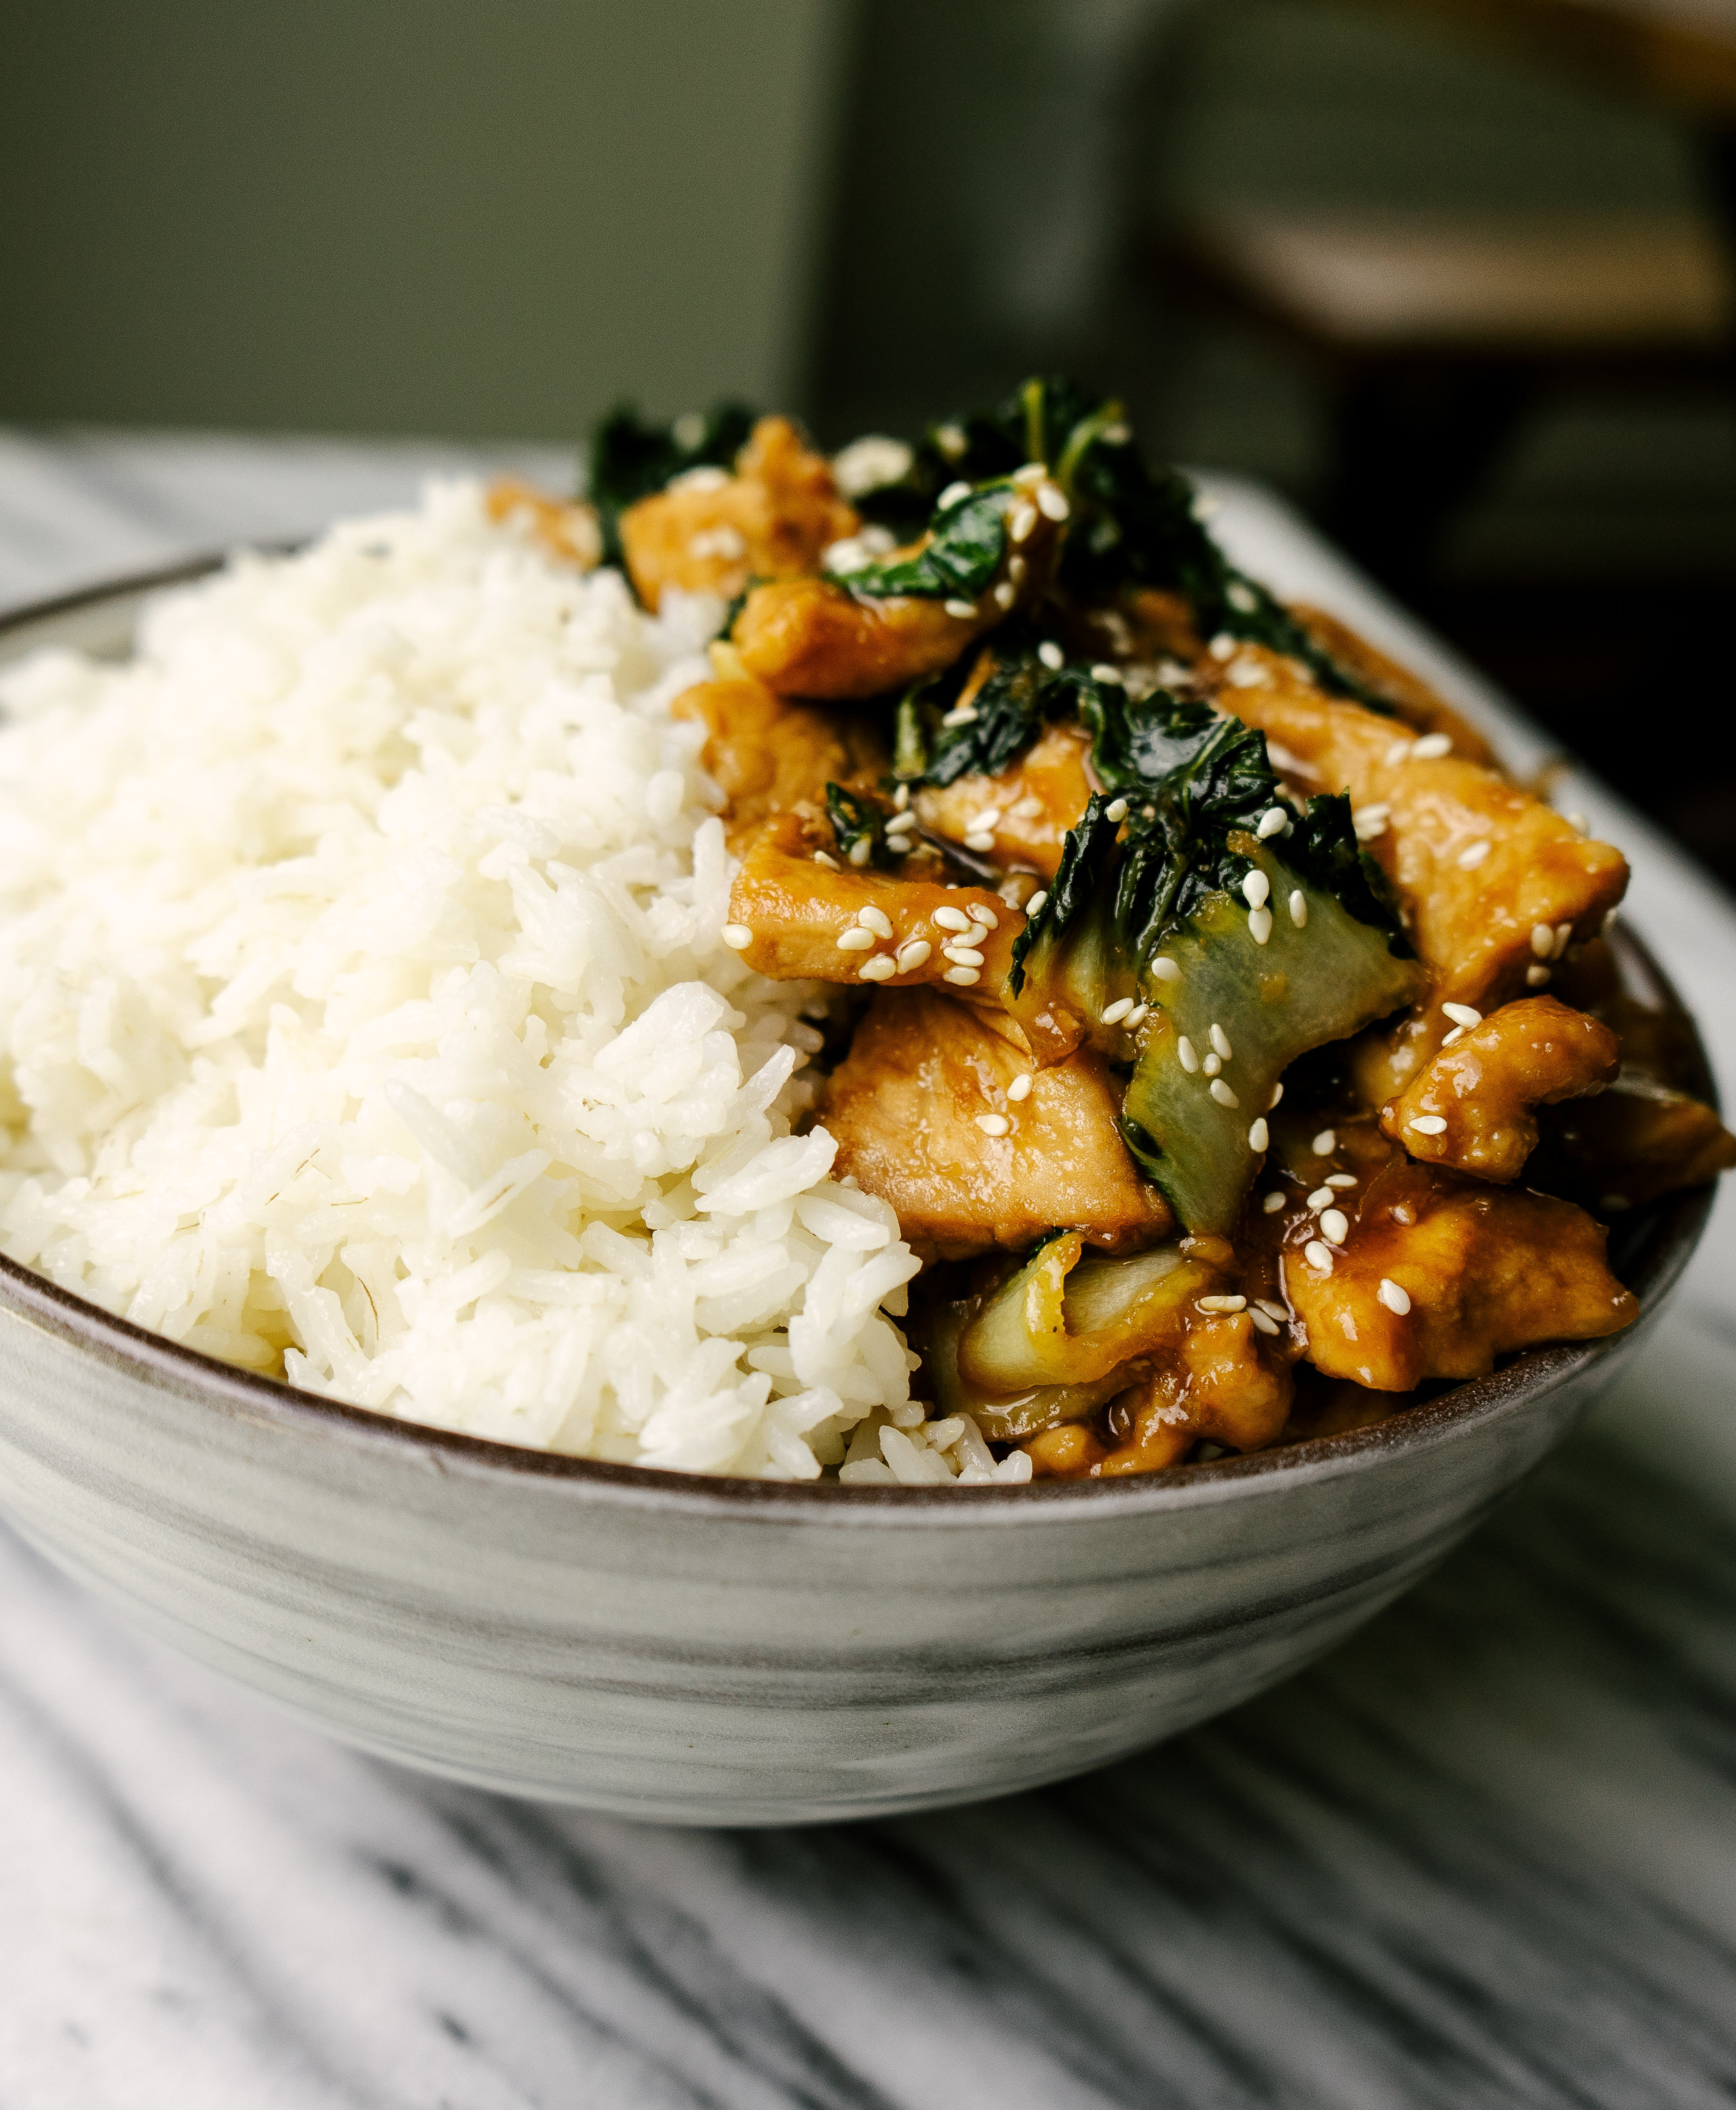 Easy Teriyaki Pork and Bok Choy is a simple weeknight dinner that is an easy and healthy alternative to take out. This easy teriyaki pork comes together in less than 30 minutes and makes for a delicious quick dinner when served with some simple white rice.